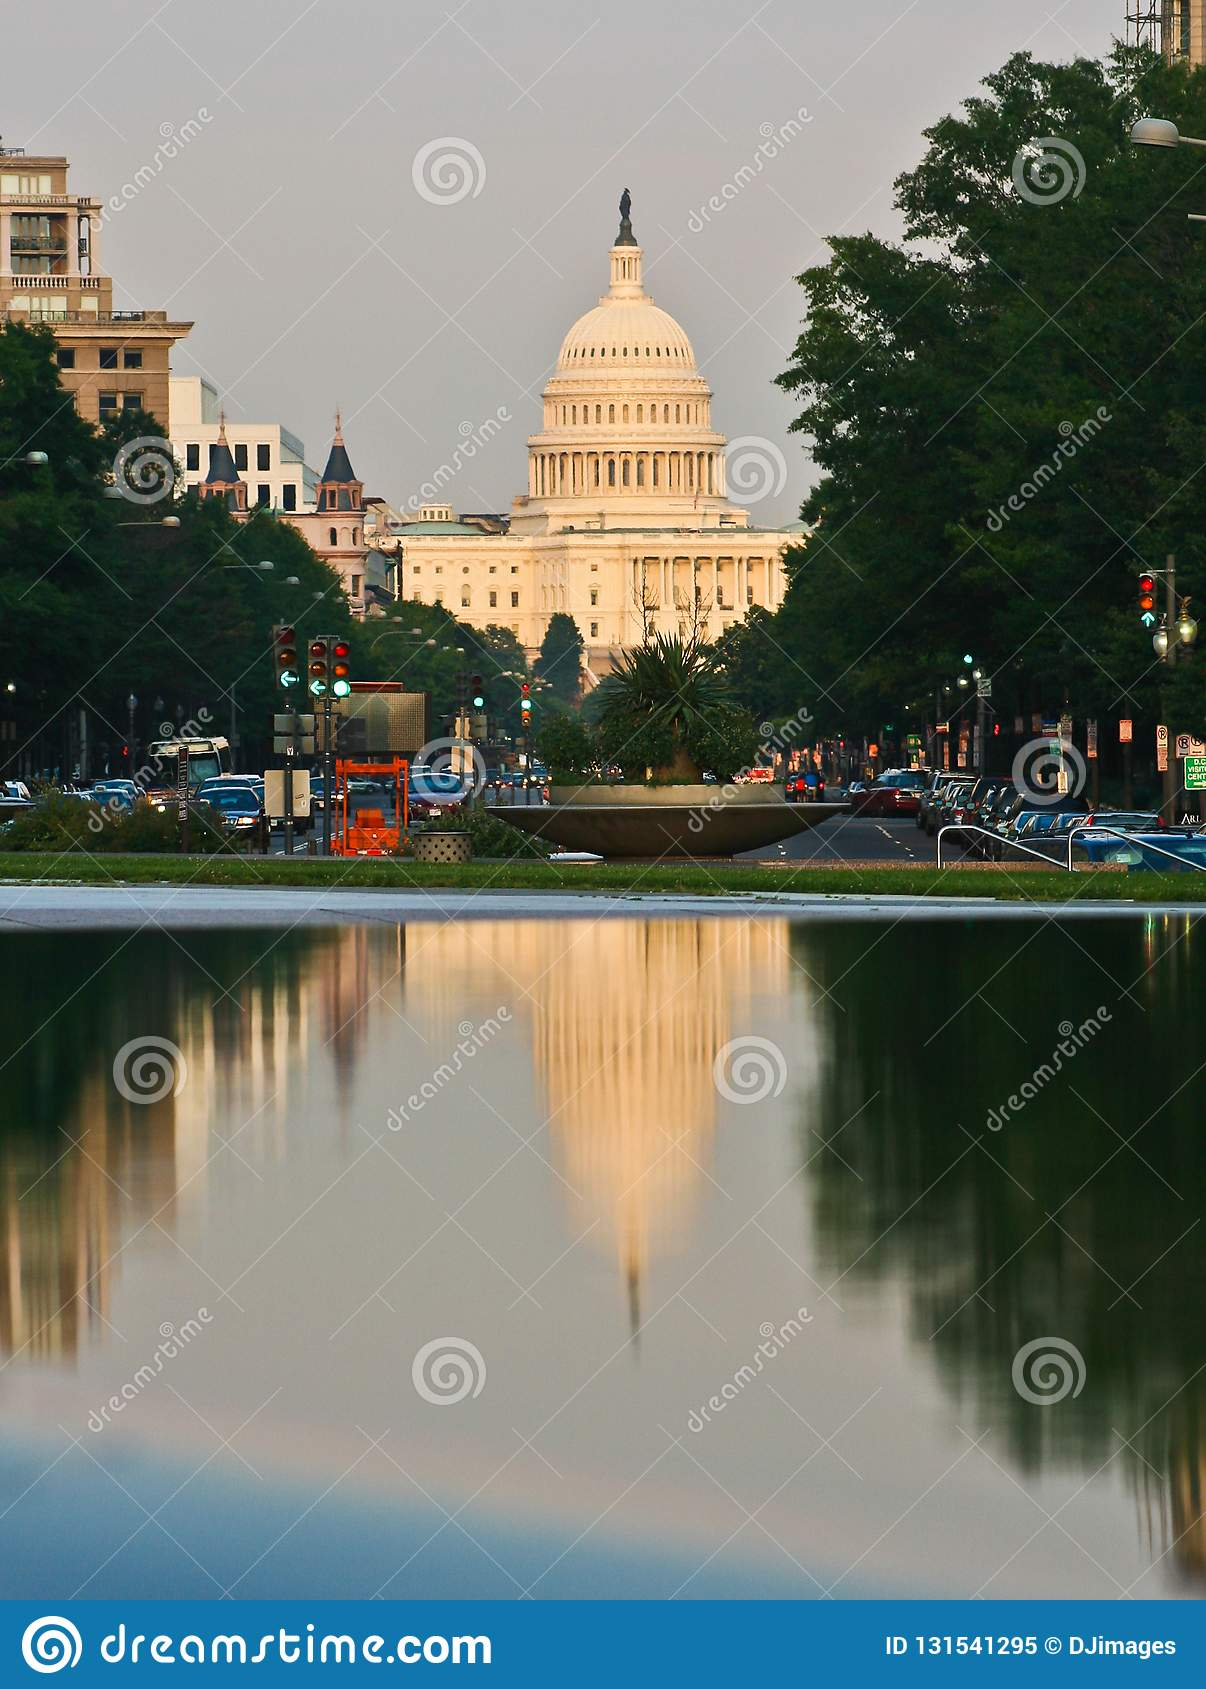 U.S. Capital Building reflection on street fountain. June 2006